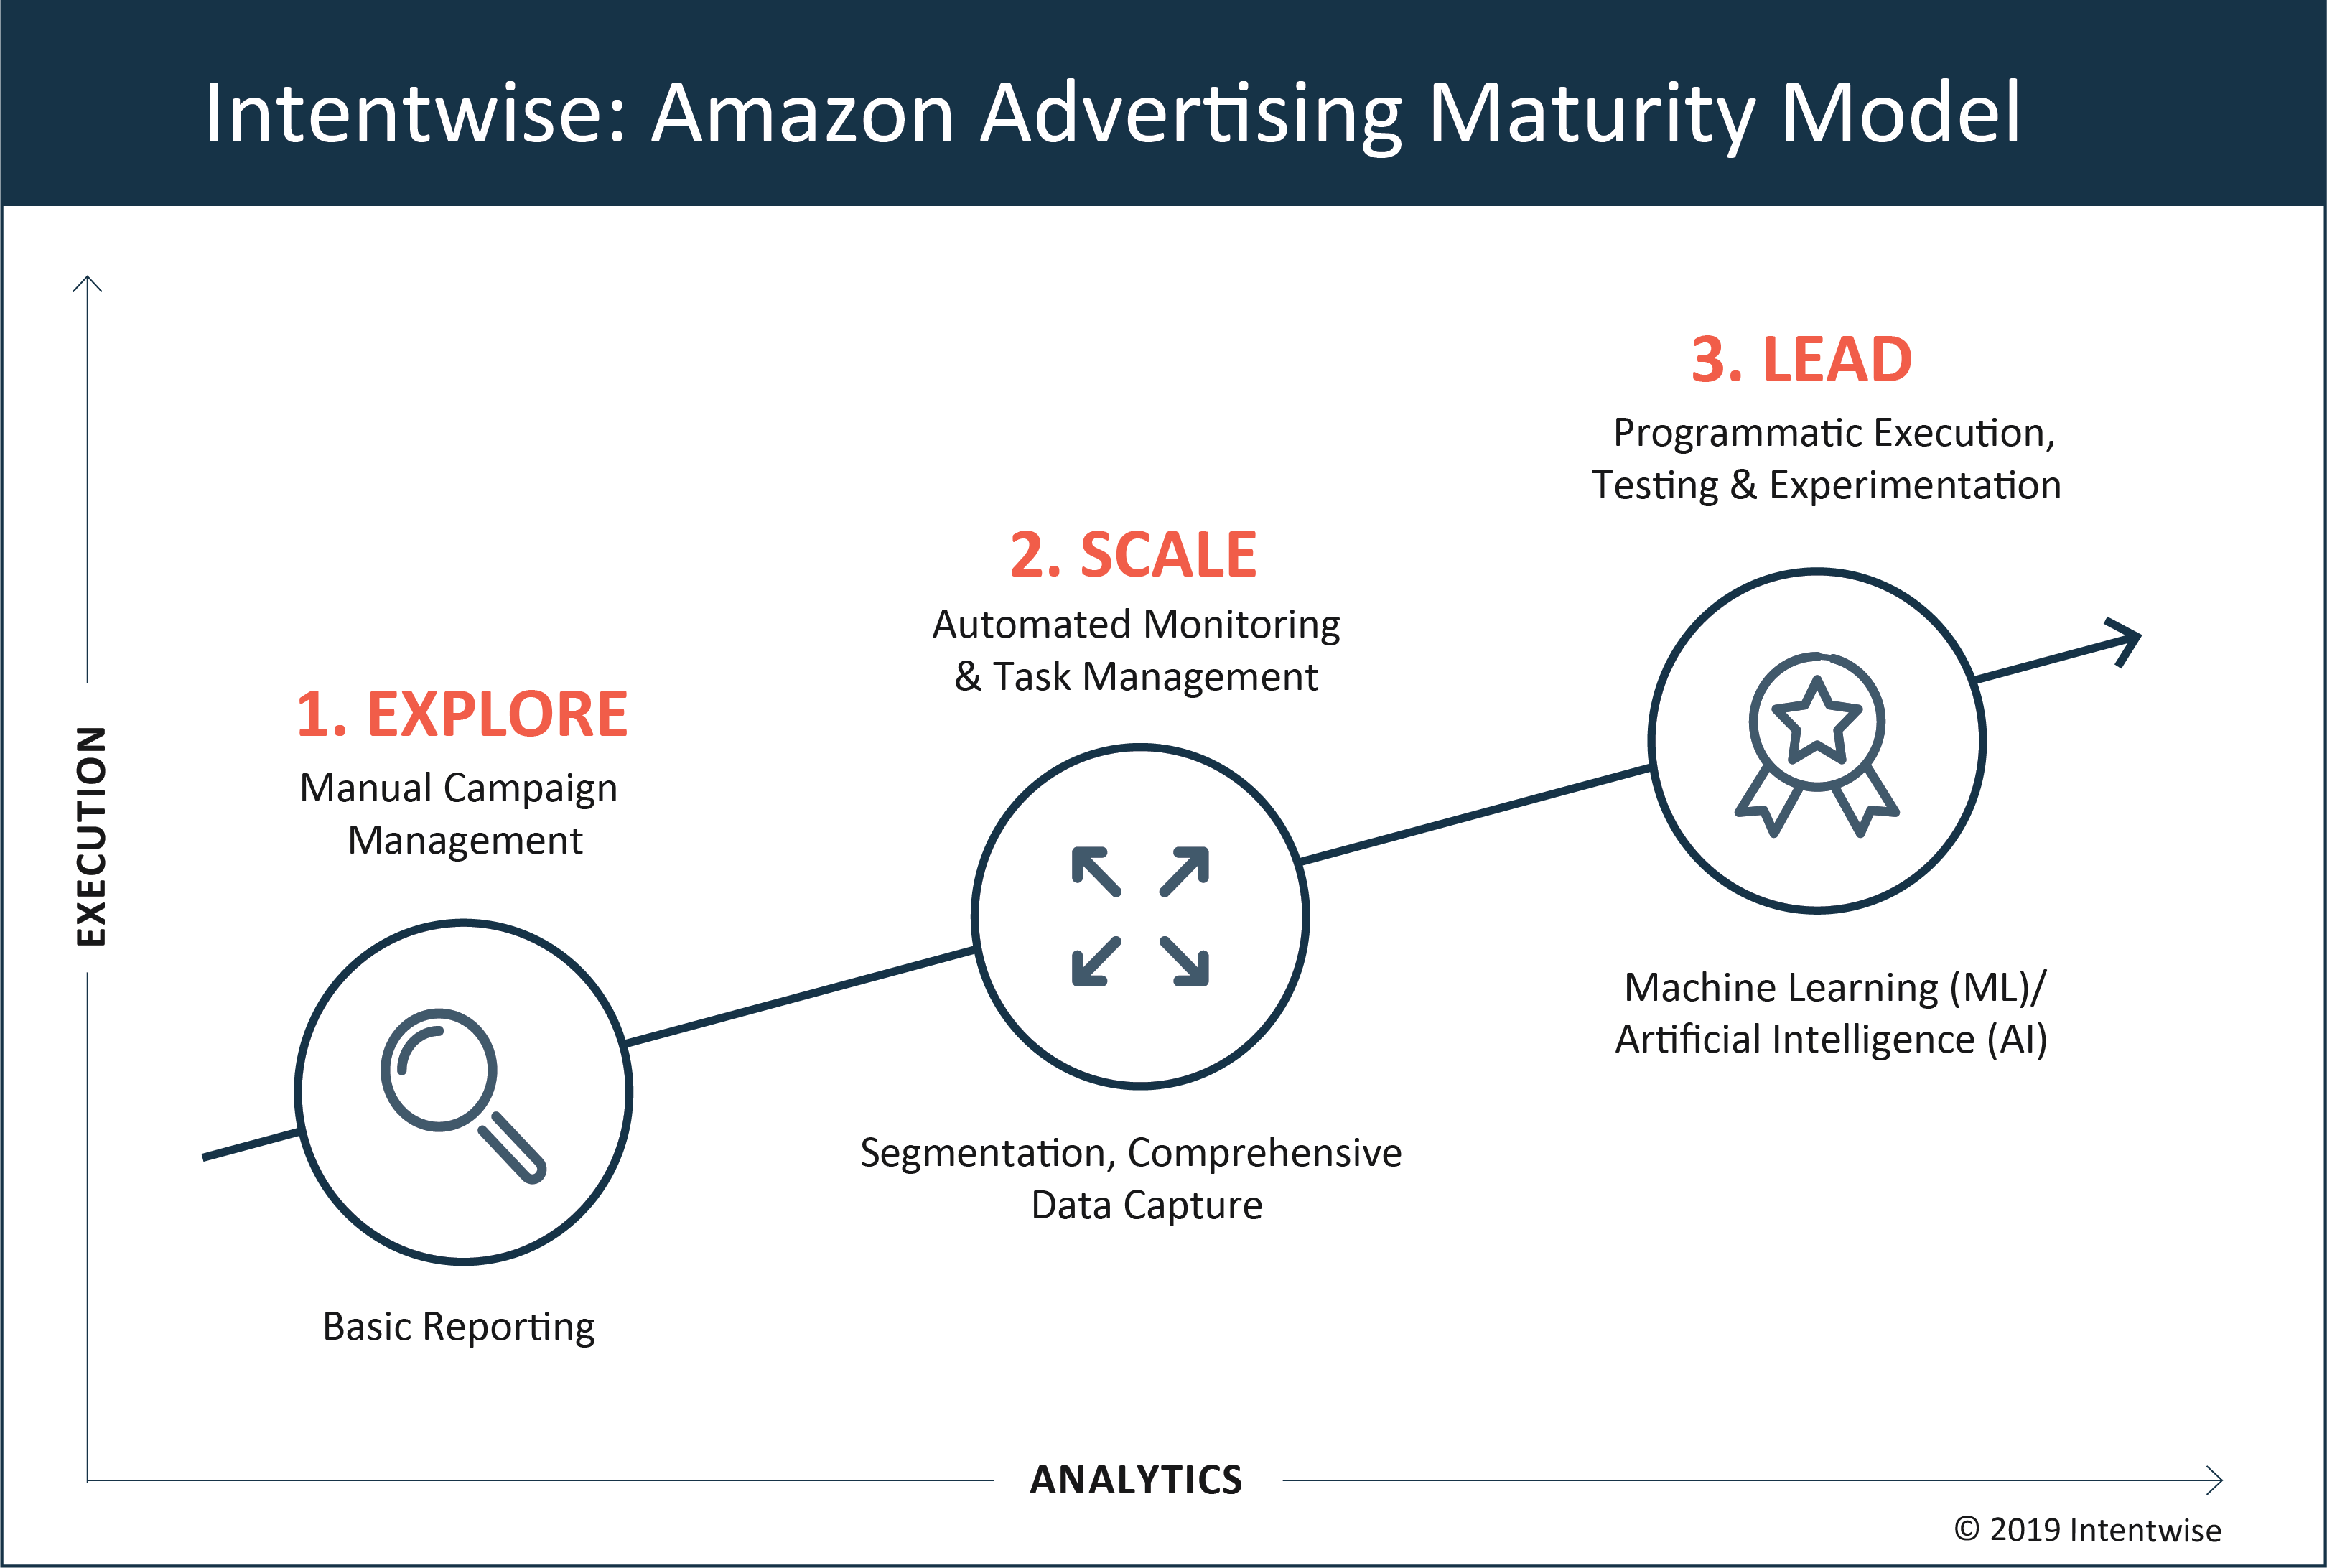 Intentwise Amazon Advertising Maturity Model